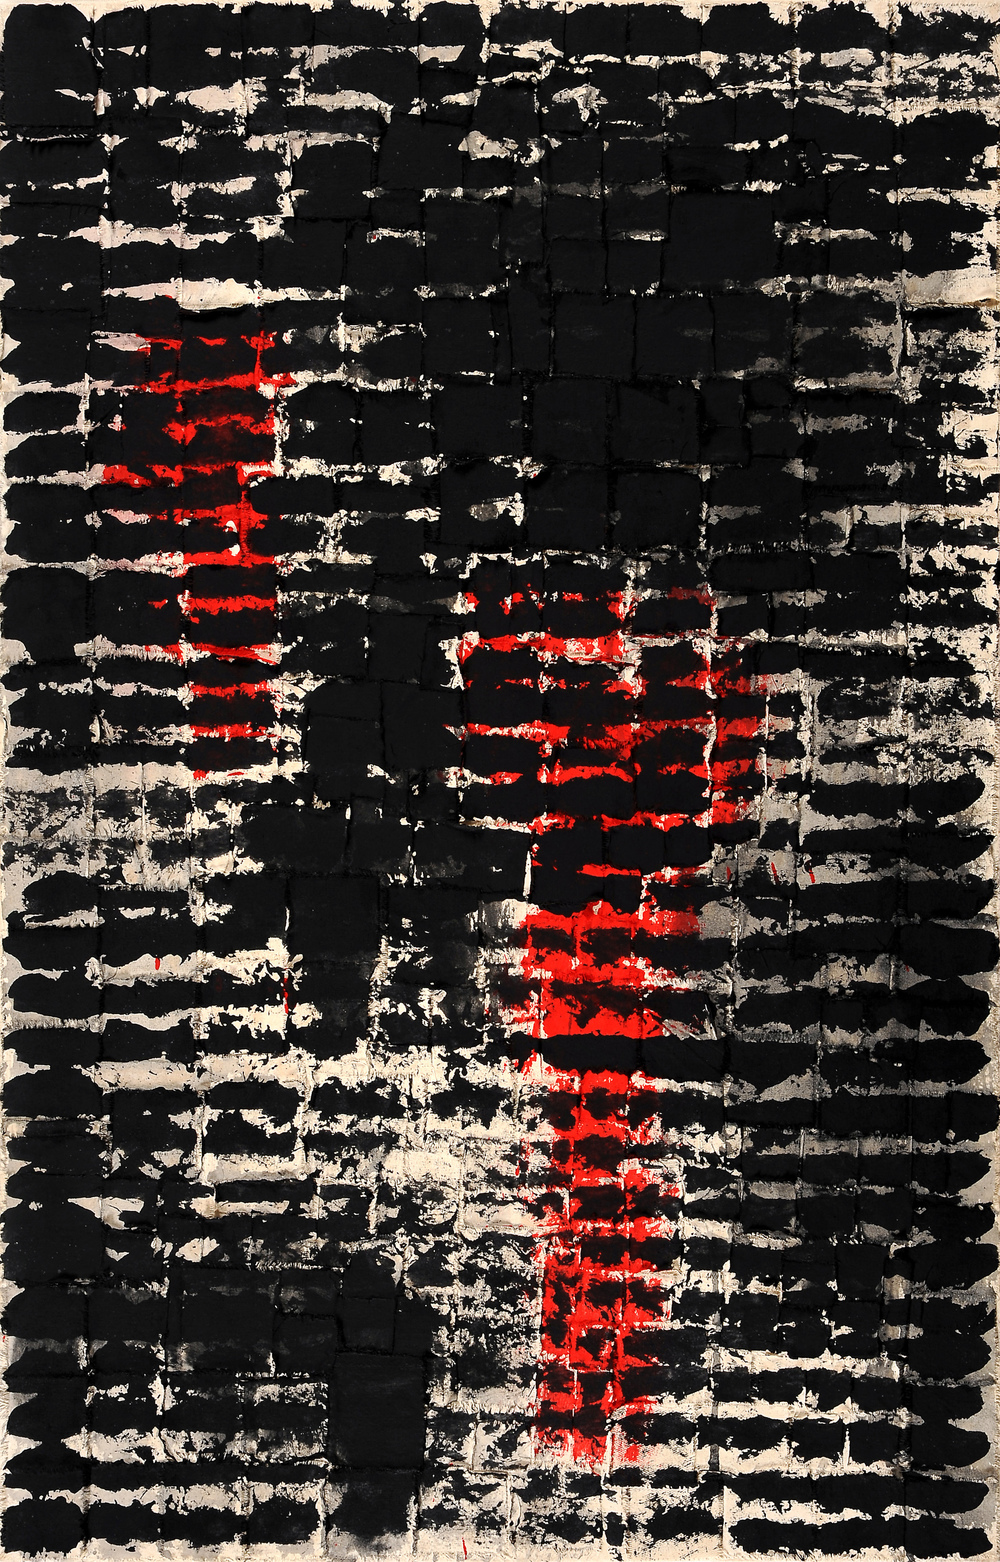 Roberto Diago , No. 5  (from the series  Entre Lineas ), 2012 Mixed media on canvas, 39-3/8 x 24-5/8 inches